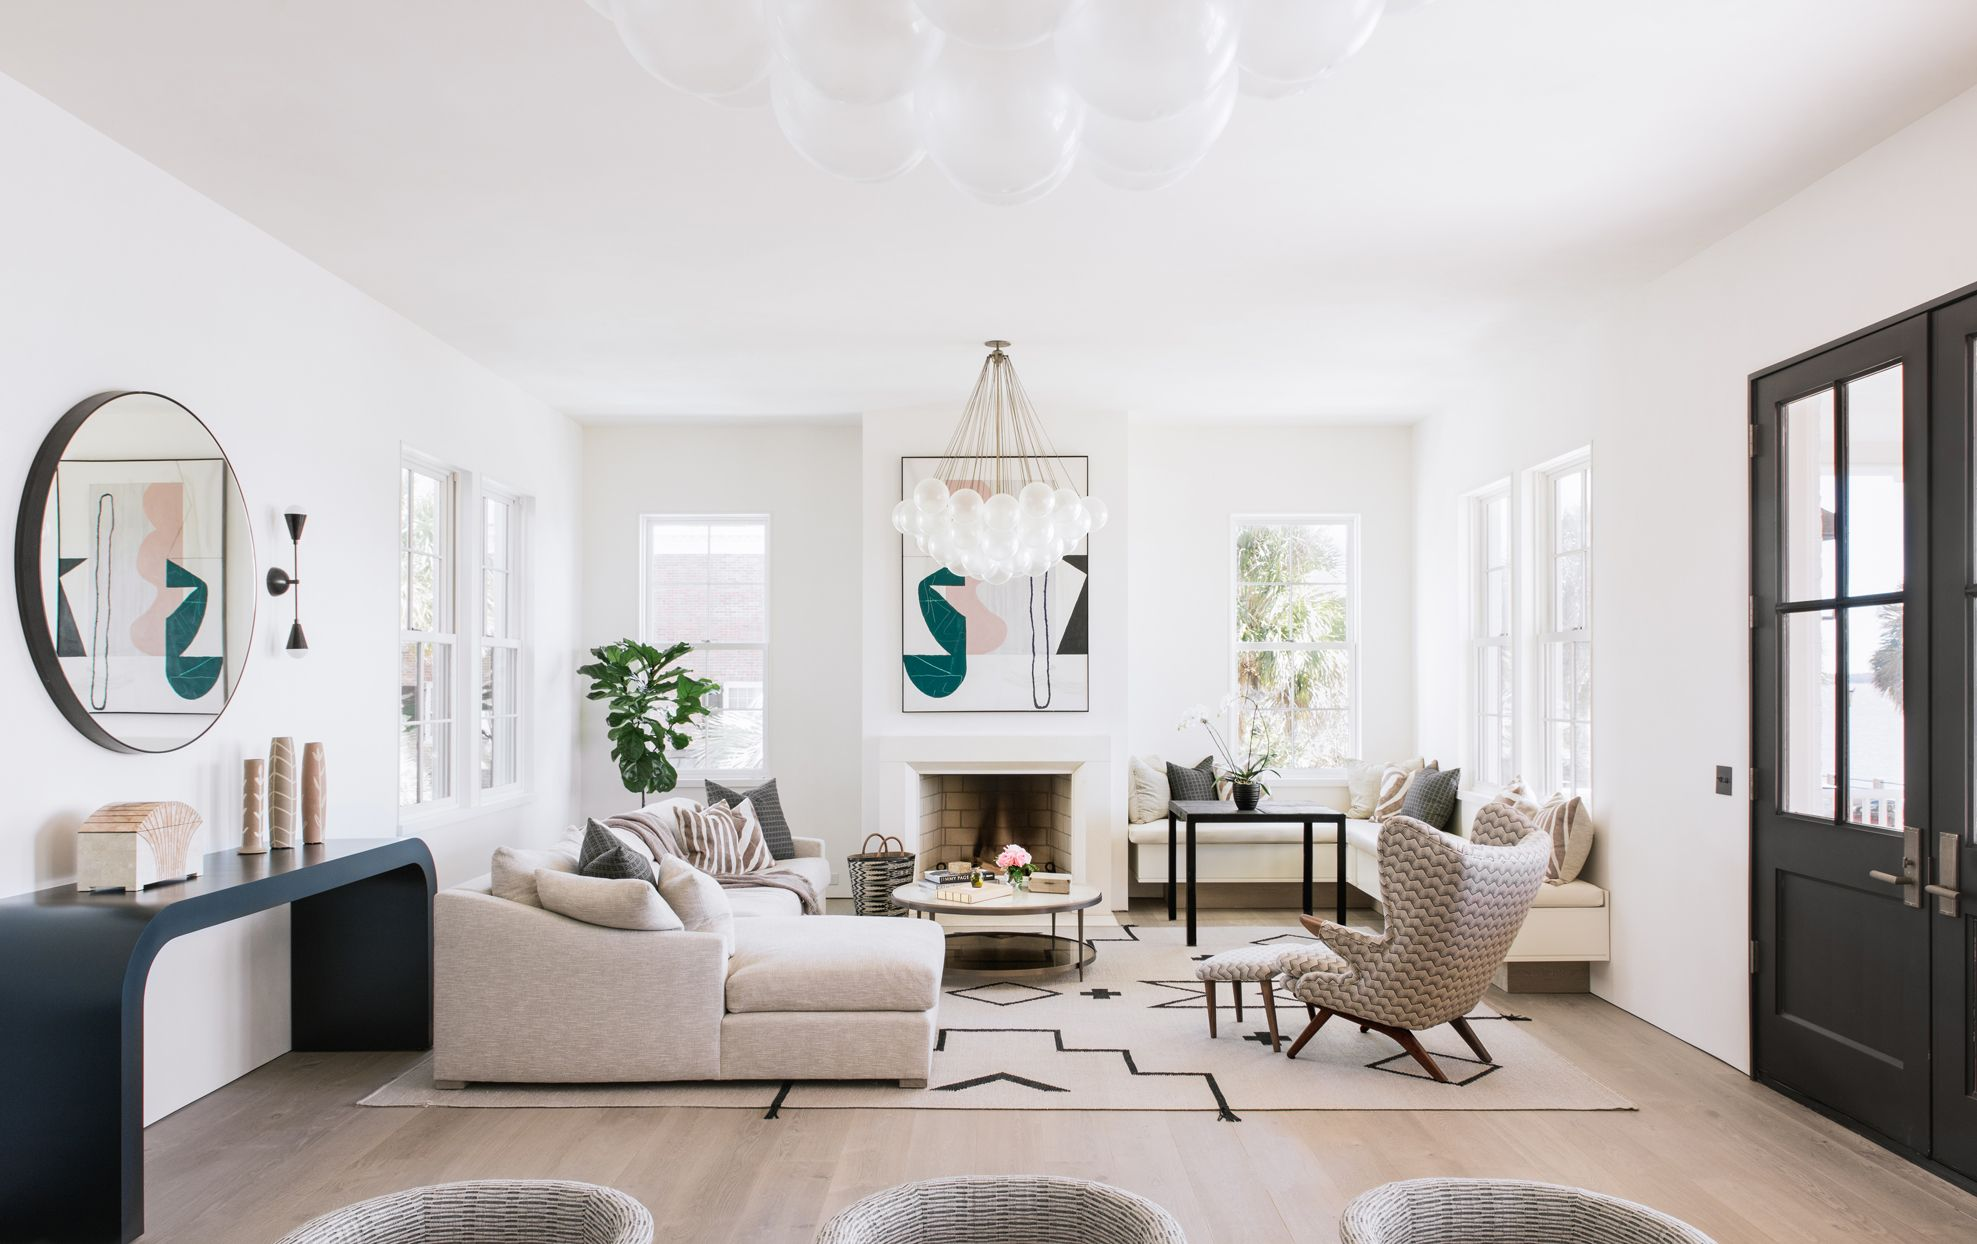 10 Chic And Stylish Living Rooms And Expert Advice On How To Recreate Them In Your Home In 2020 Stylish Living Room Living Room Decor Home Decor